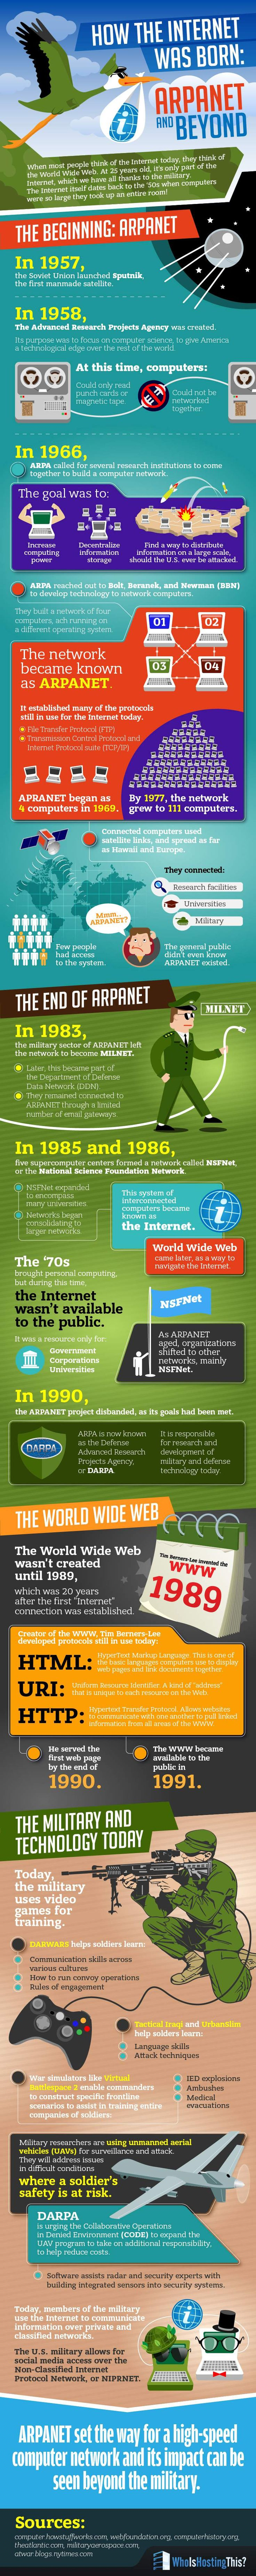 How the Internet was born: ARPANET and beyond – Via Who's Hosting This: The Blo …   – Social Media